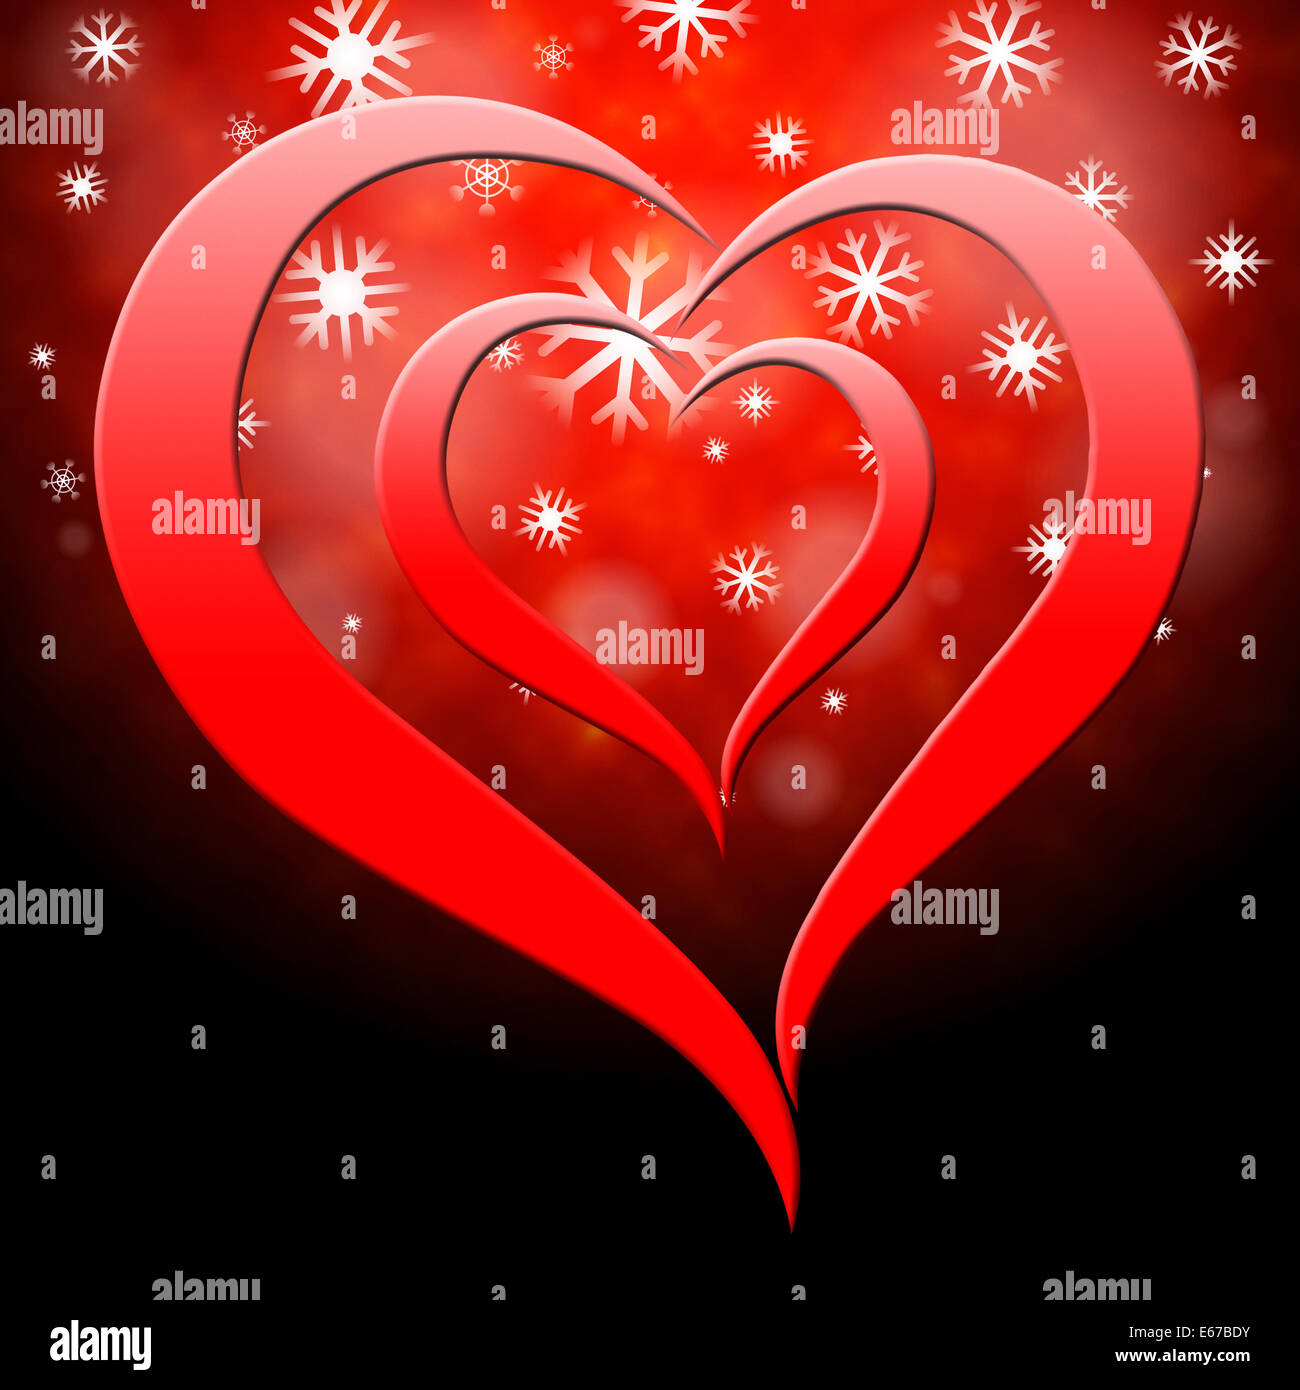 Heart Background Meaning Valentine Day And Backgrounds Stock Photo